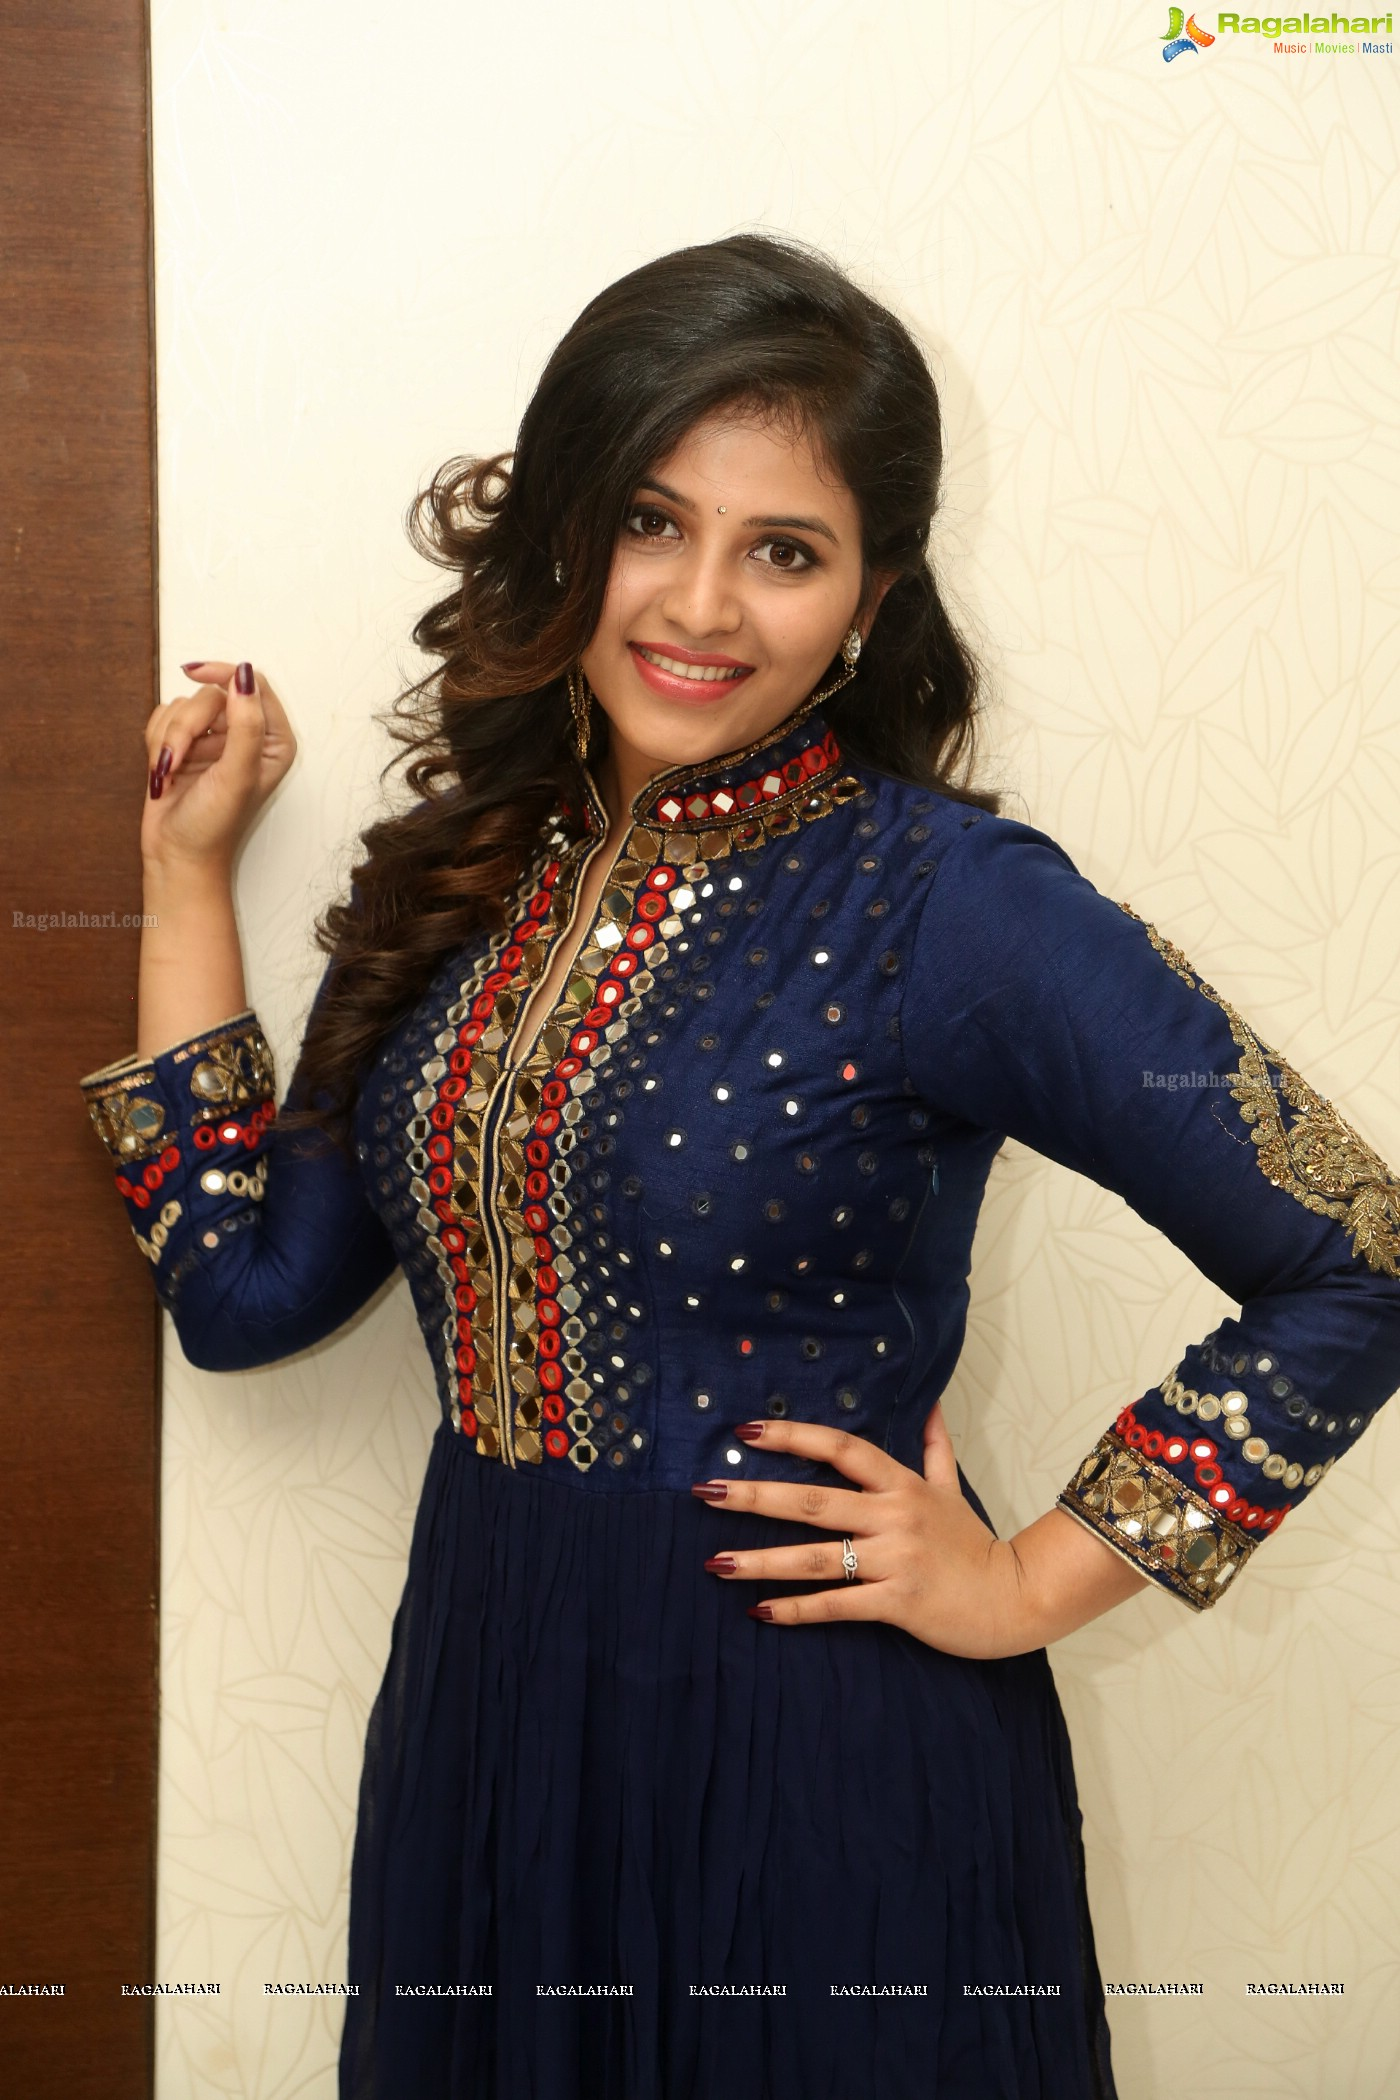 Anjali Posters Image 25 Latest Bollywood Actor Wallpaperstelugu